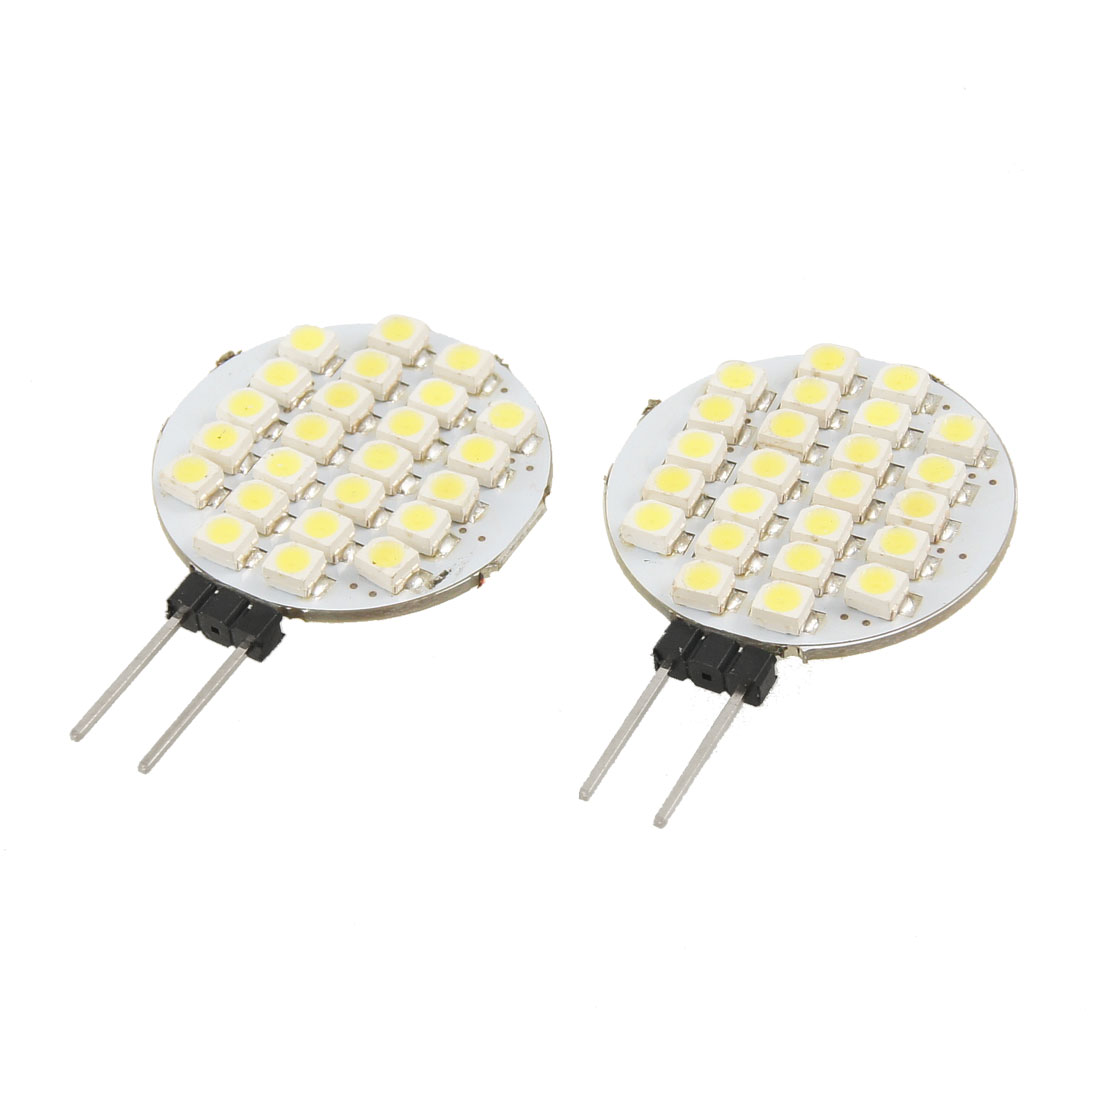 2 Pcs White 24 SMD LEDs 1210 Vertical G4 Side Pin Lamp Lights Bulb